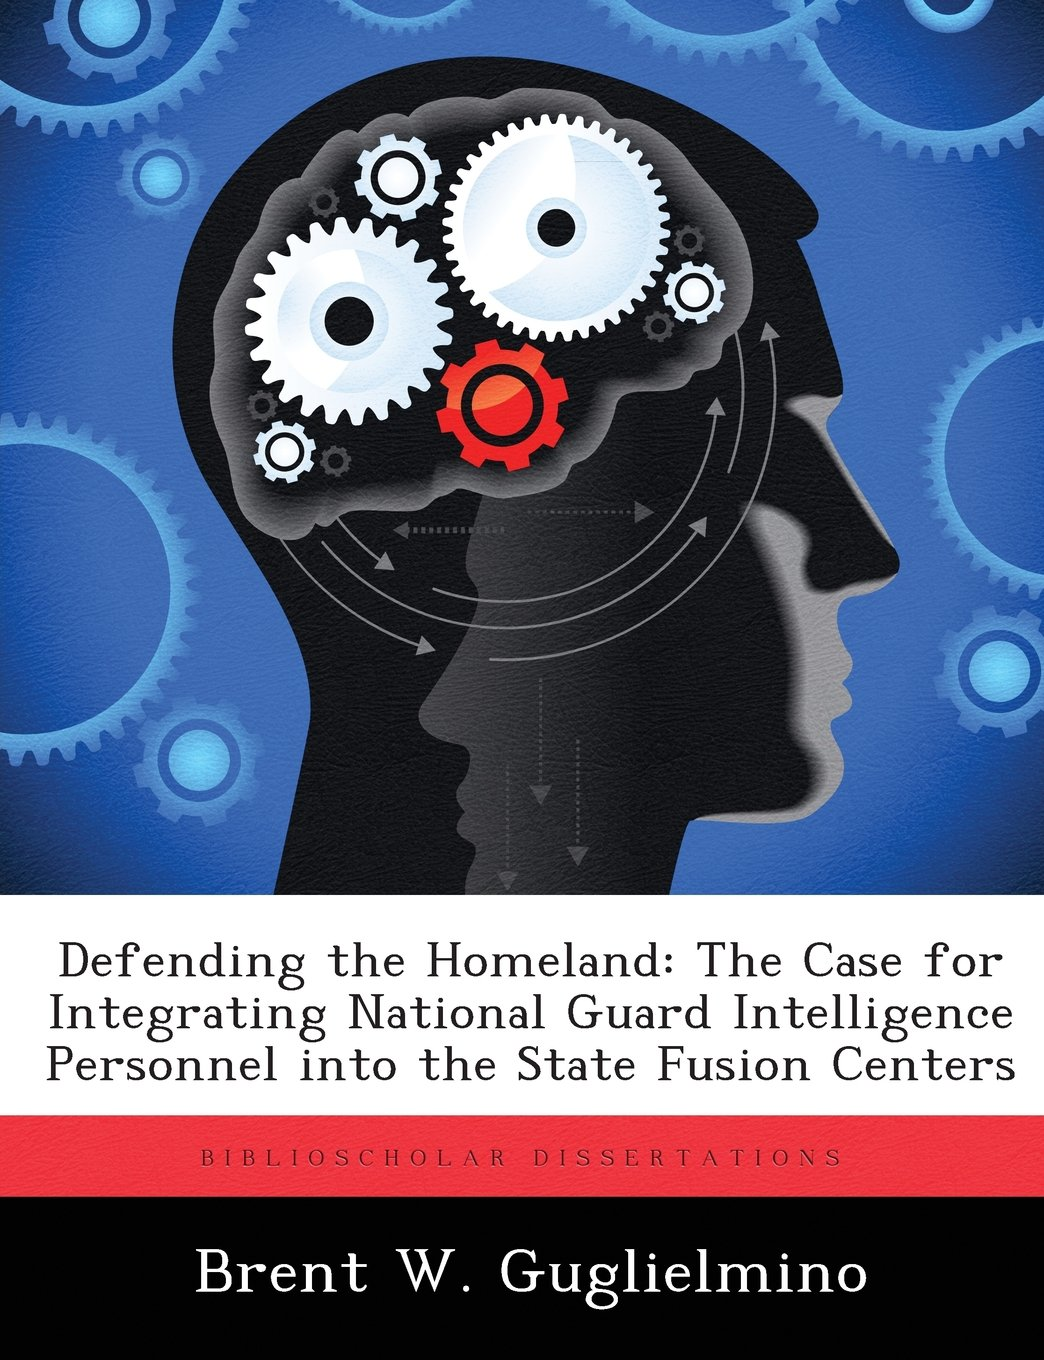 Read Online Defending the Homeland: The Case for Integrating National Guard Intelligence Personnel into the State Fusion Centers pdf epub